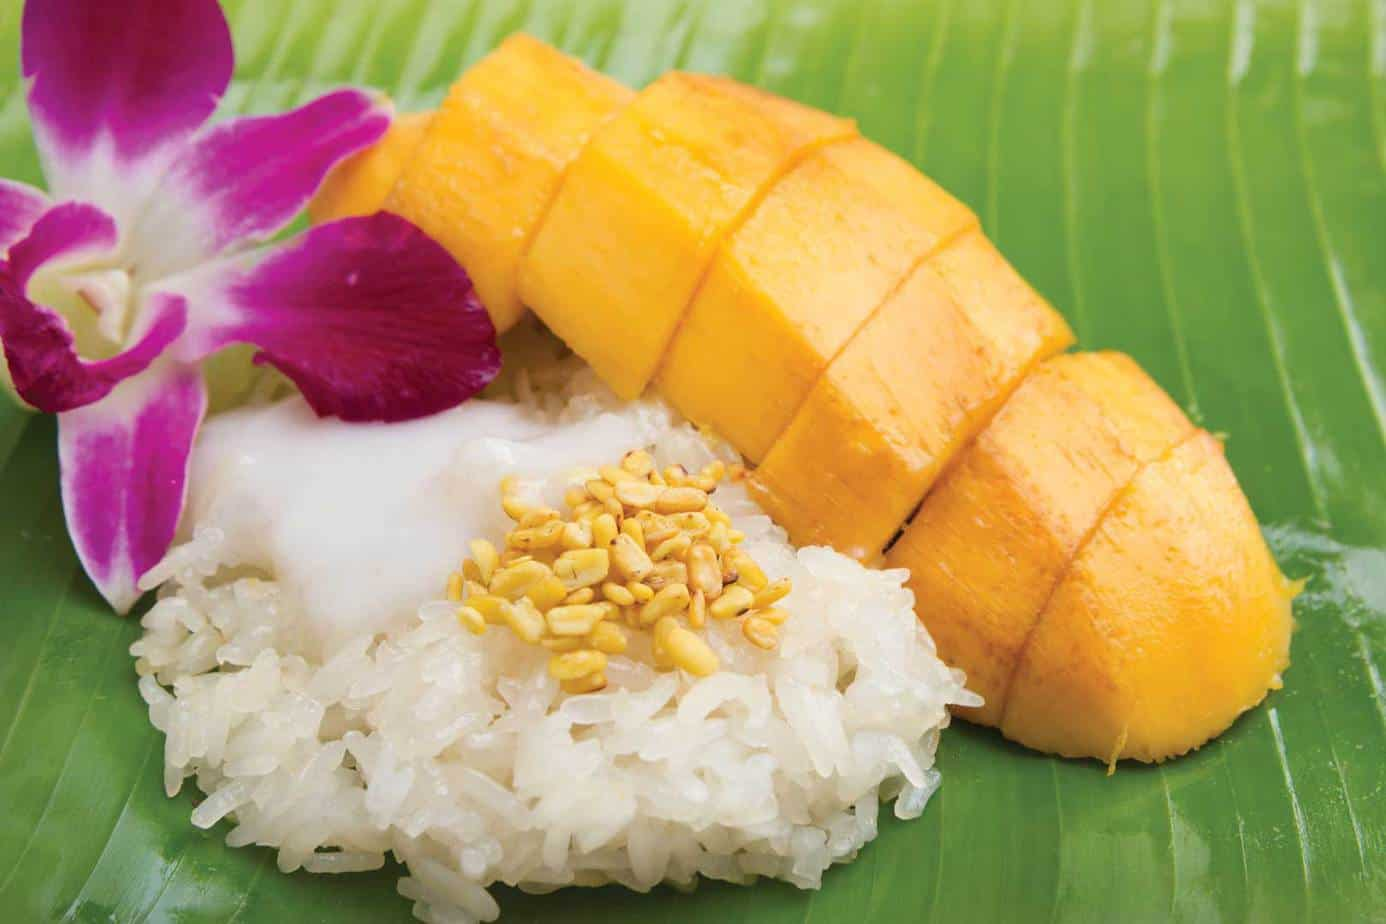 33. Sticky Rice with Mango (Seasonal)